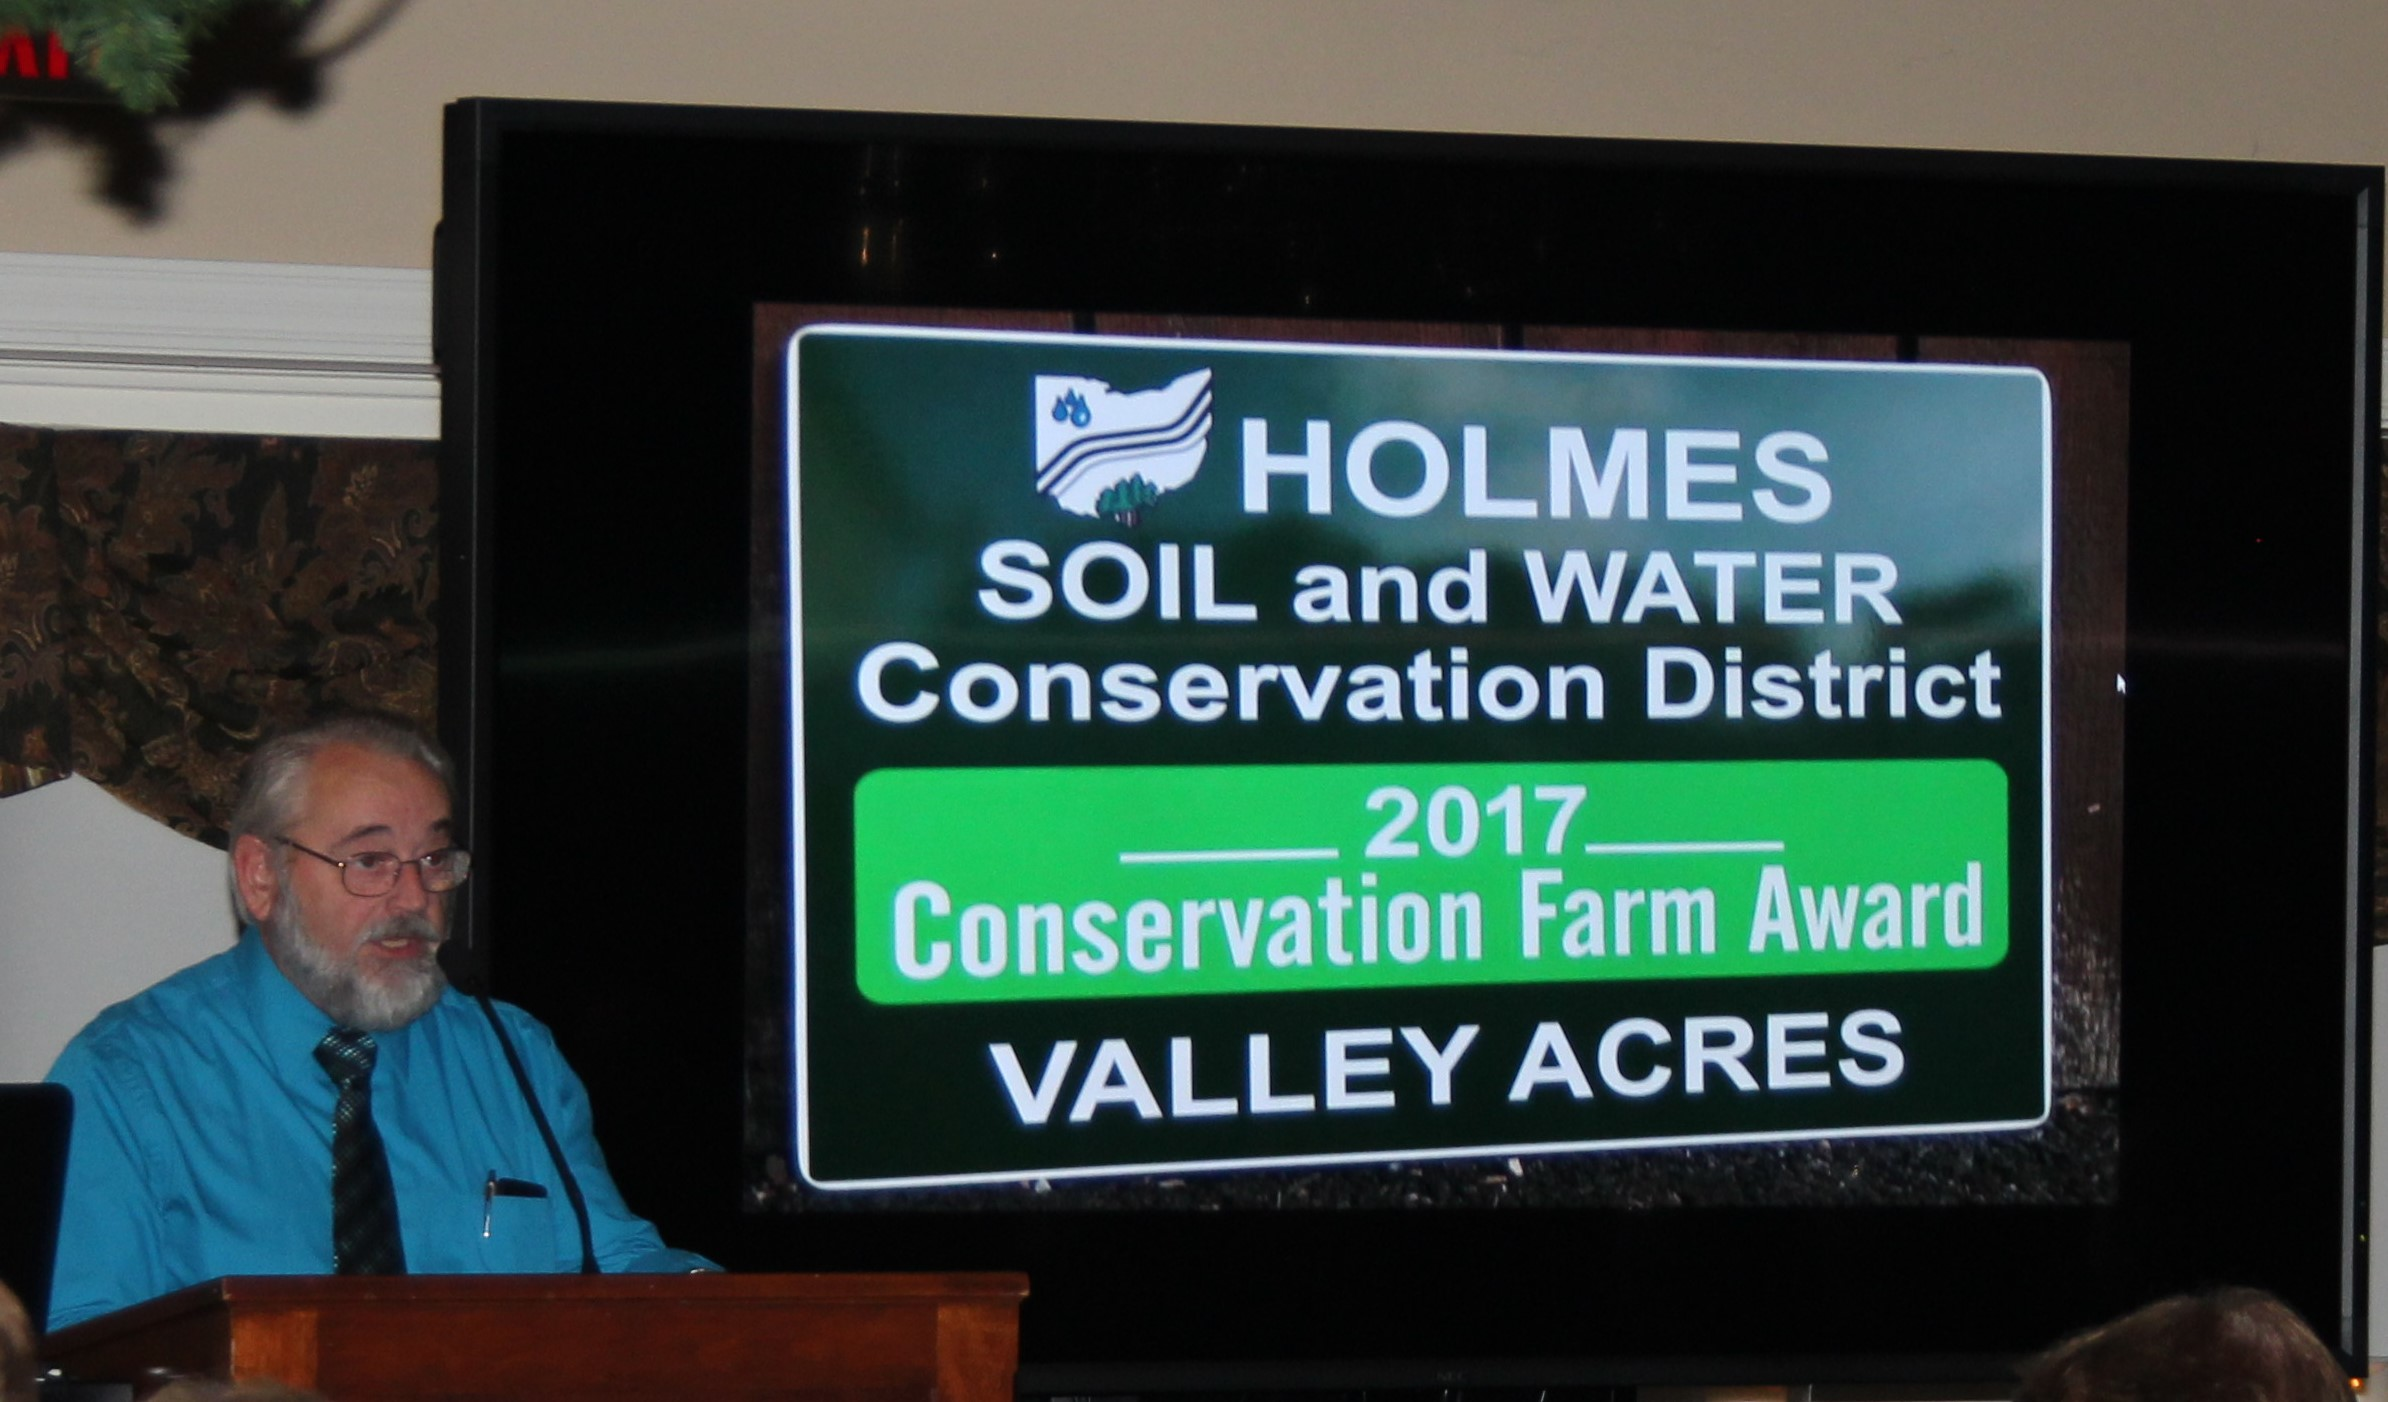 Ohio Federation of Soil & Water Conservation District President Harold Neuenschwander presents the Conservation Farm Award to Valley Acres farm.